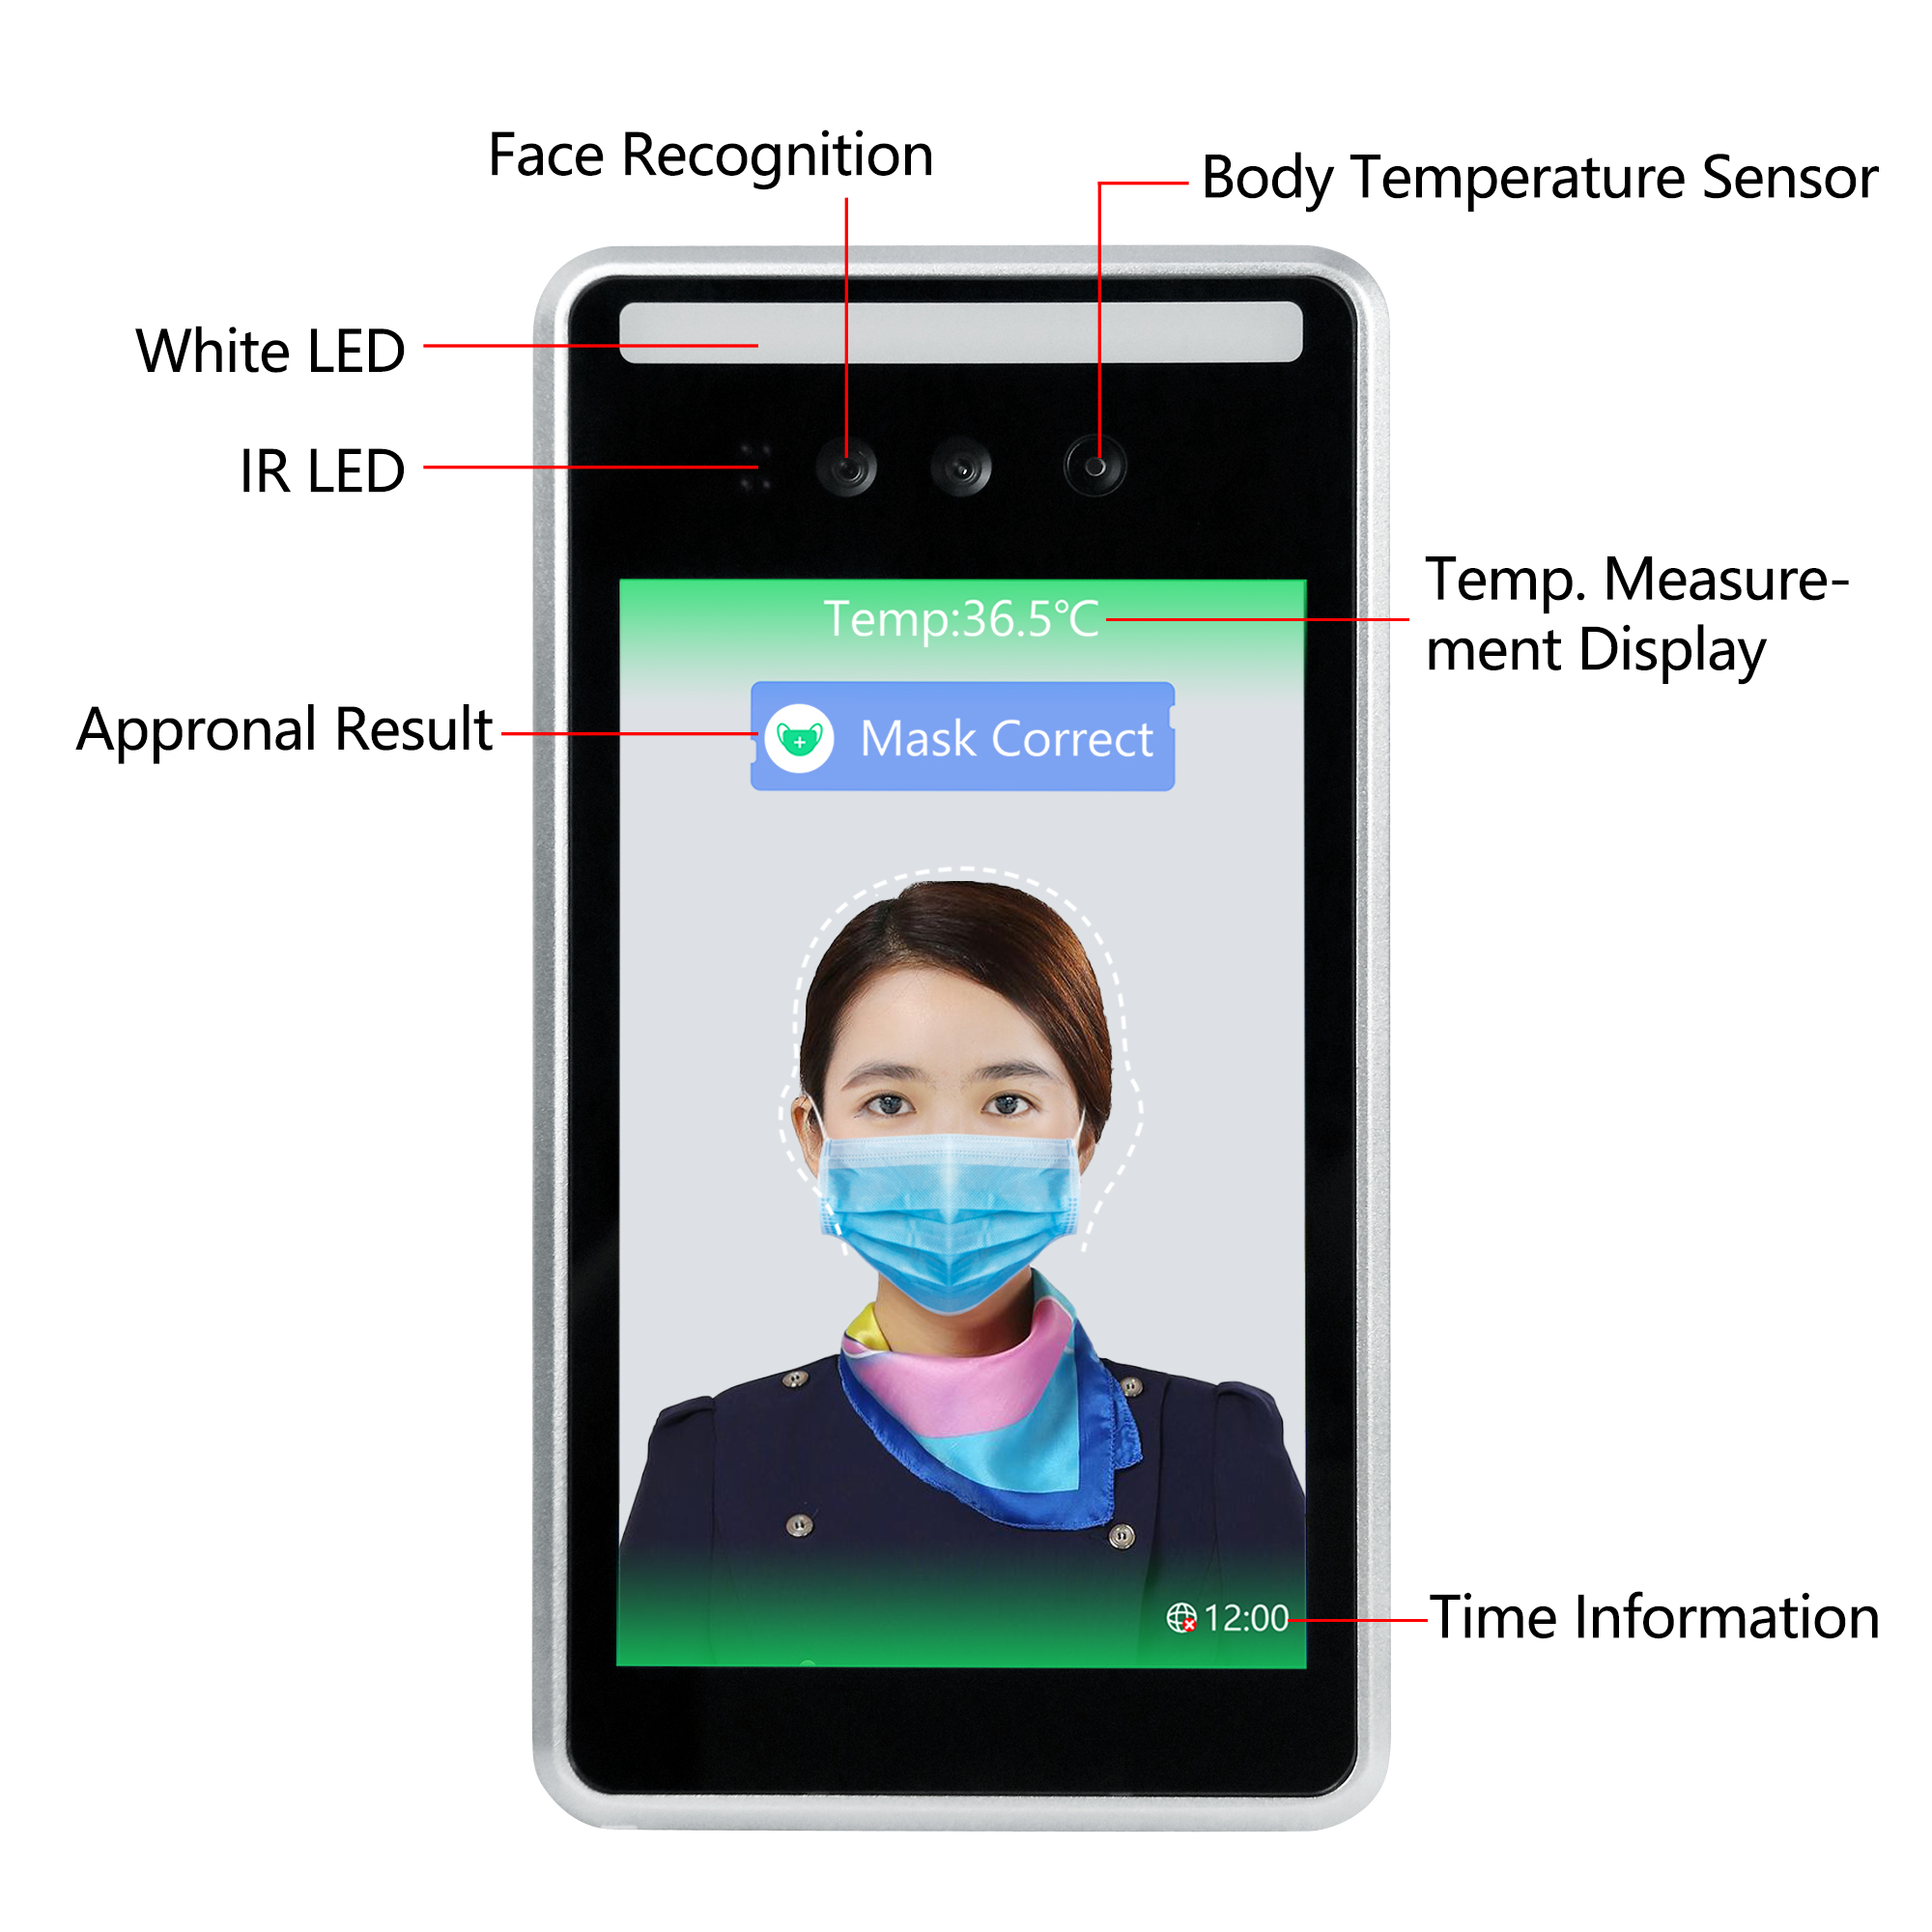 Wall-Mounted Infrared Measurement Quick Identity Verification Attendance Record Function Thermometer Camera Featured Image